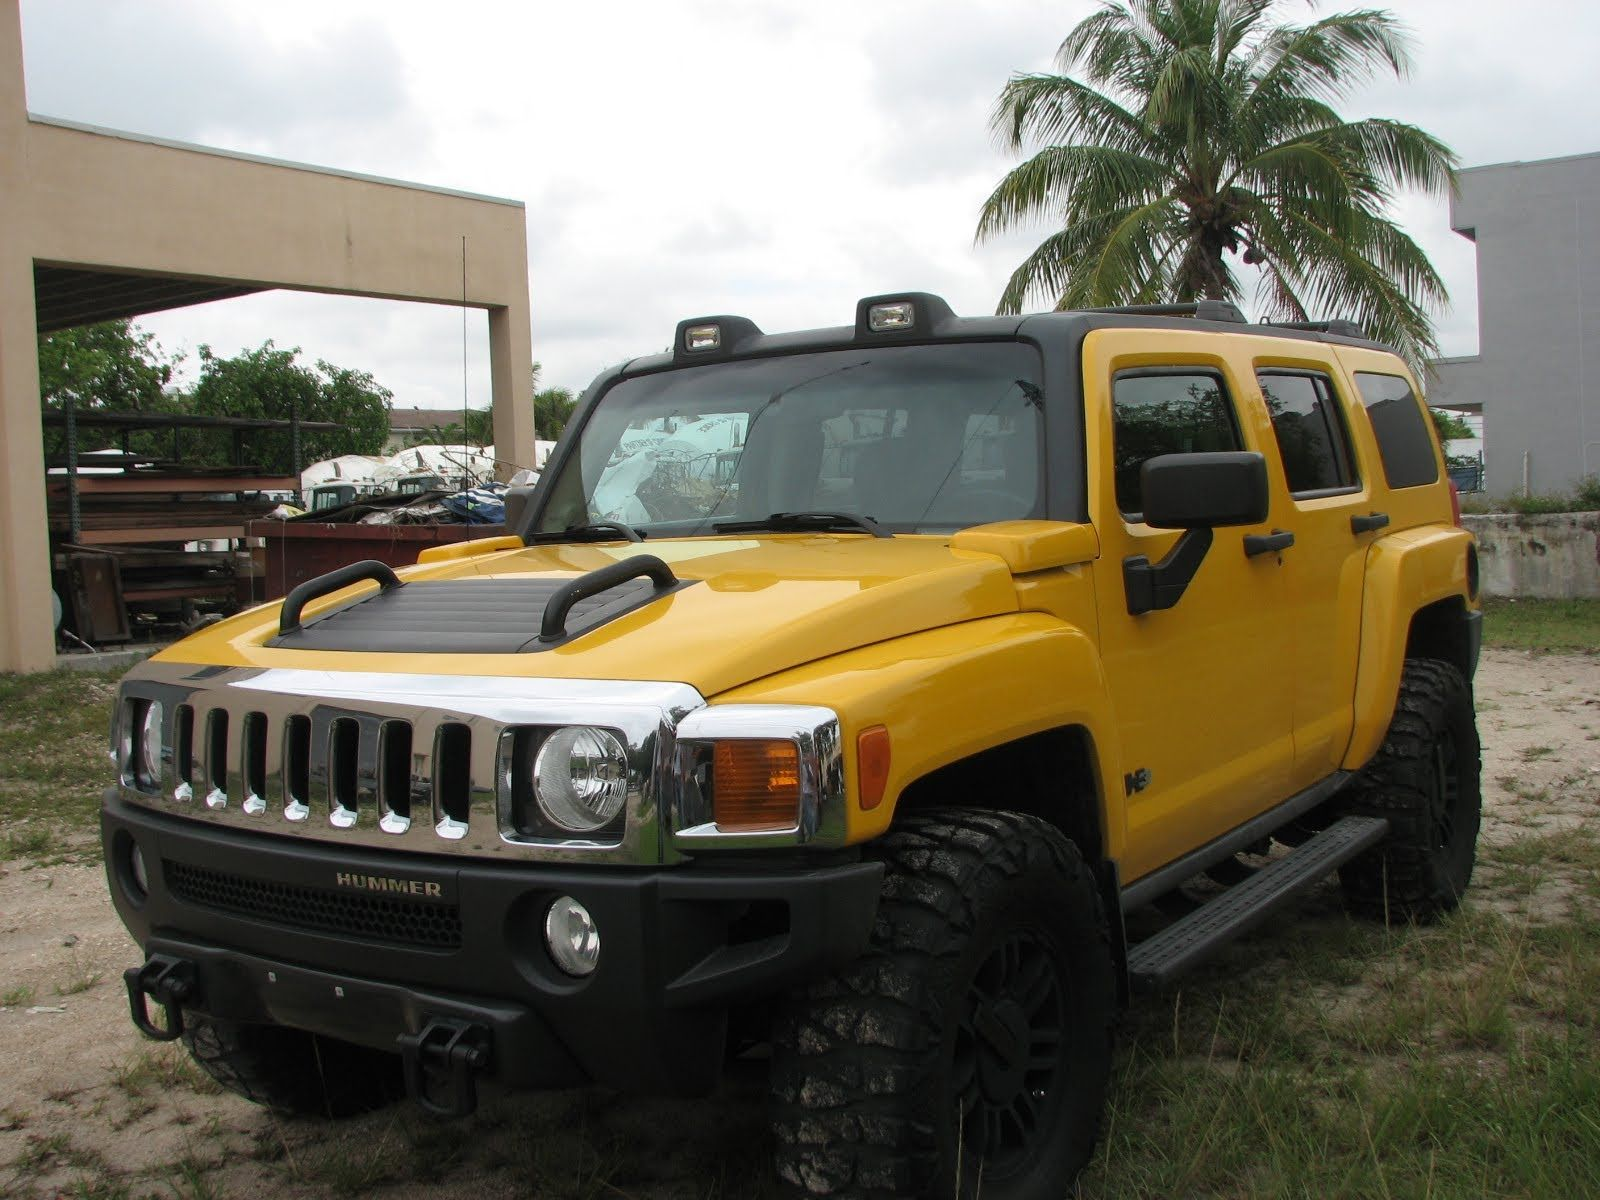 Hummer H3 2006 Yellow My Mint Car Youtube Hummer Cars Hummer Hummer H3